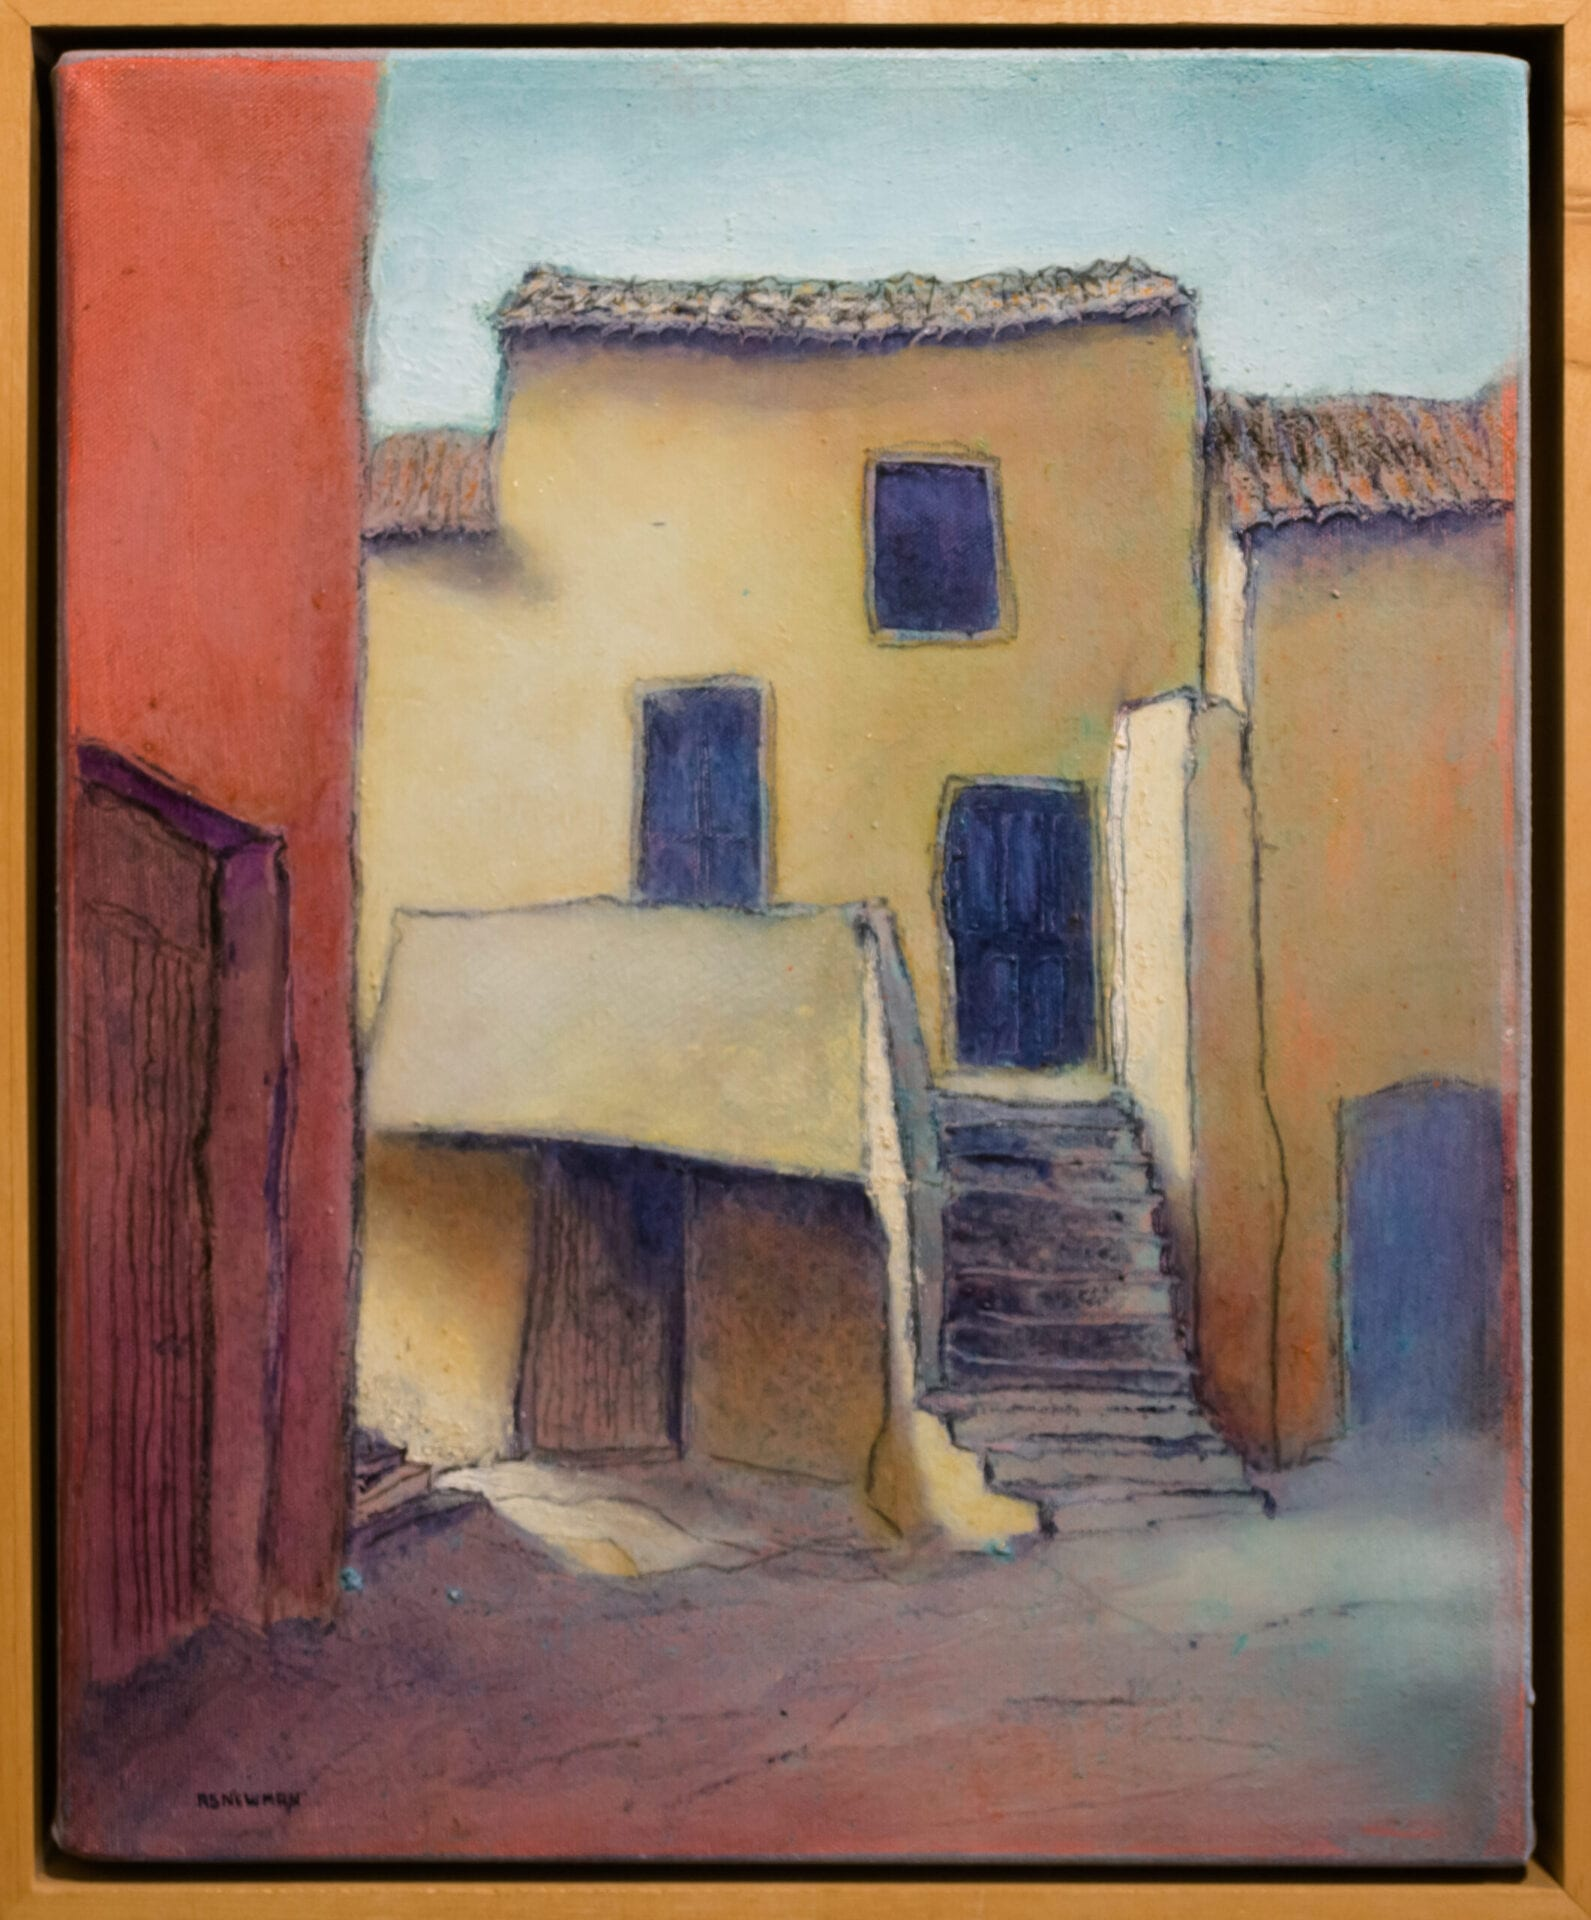 House with Stairs (St. Pons) | Andy Newman | Oil | 16 x 13""